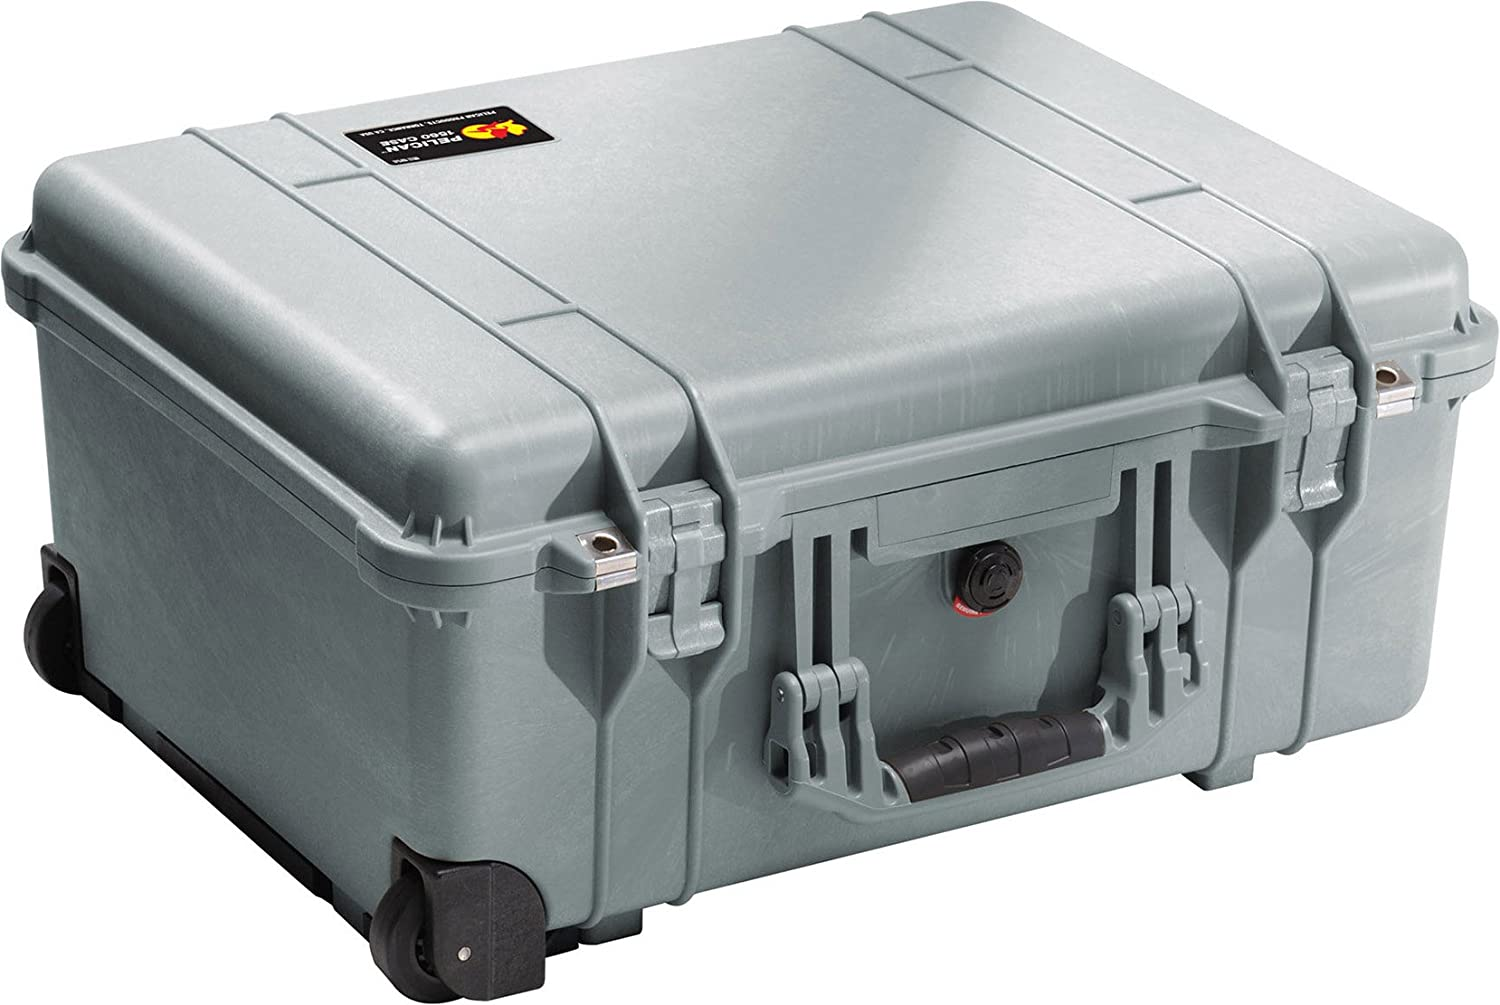 Pelican 1560 Camera Case With Foam (Silver)